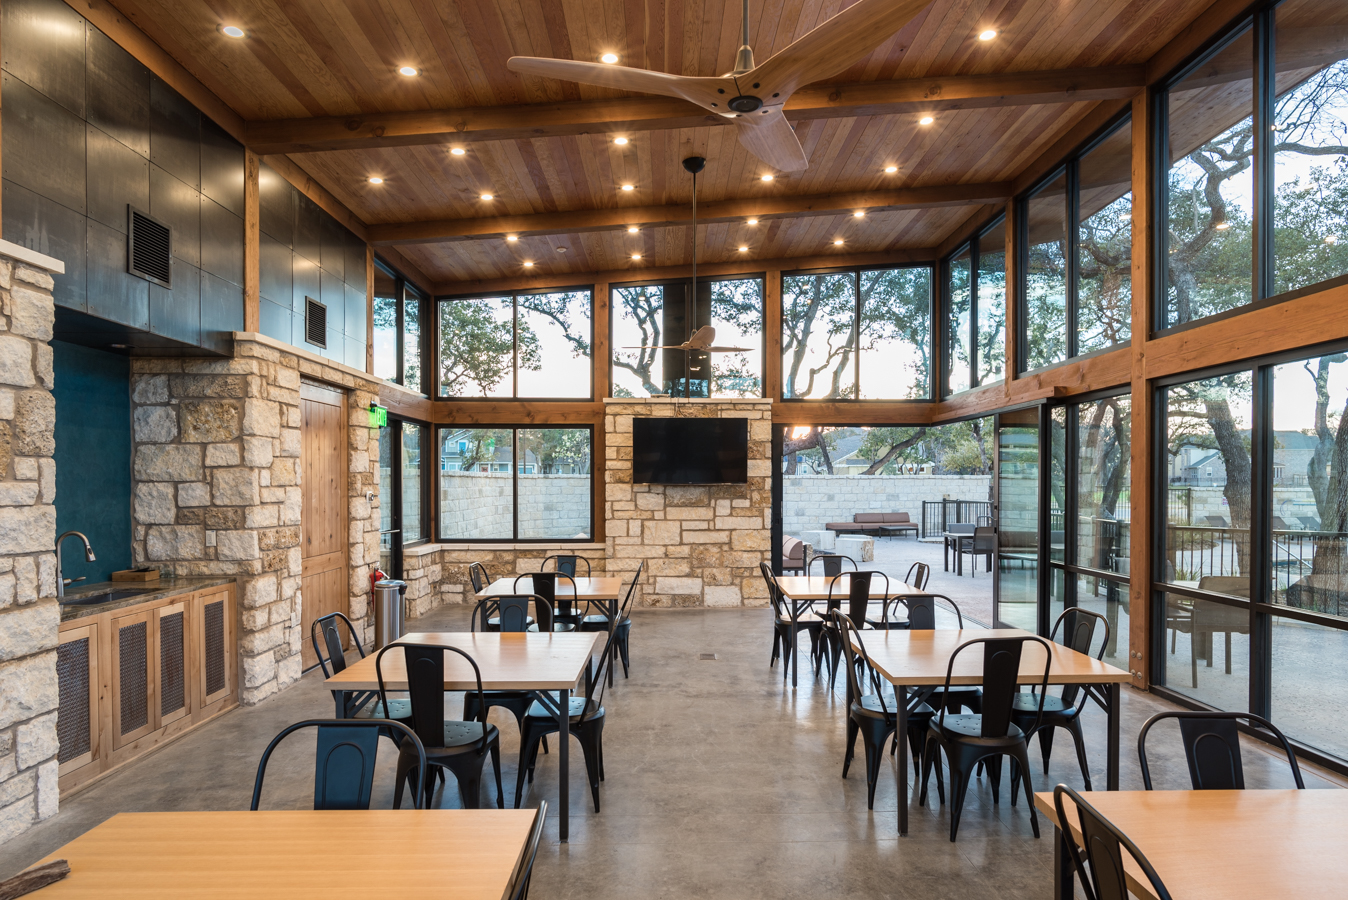 Northwoods at avery ranch marsh associates inc golf country club architects interior Architects and interior designers